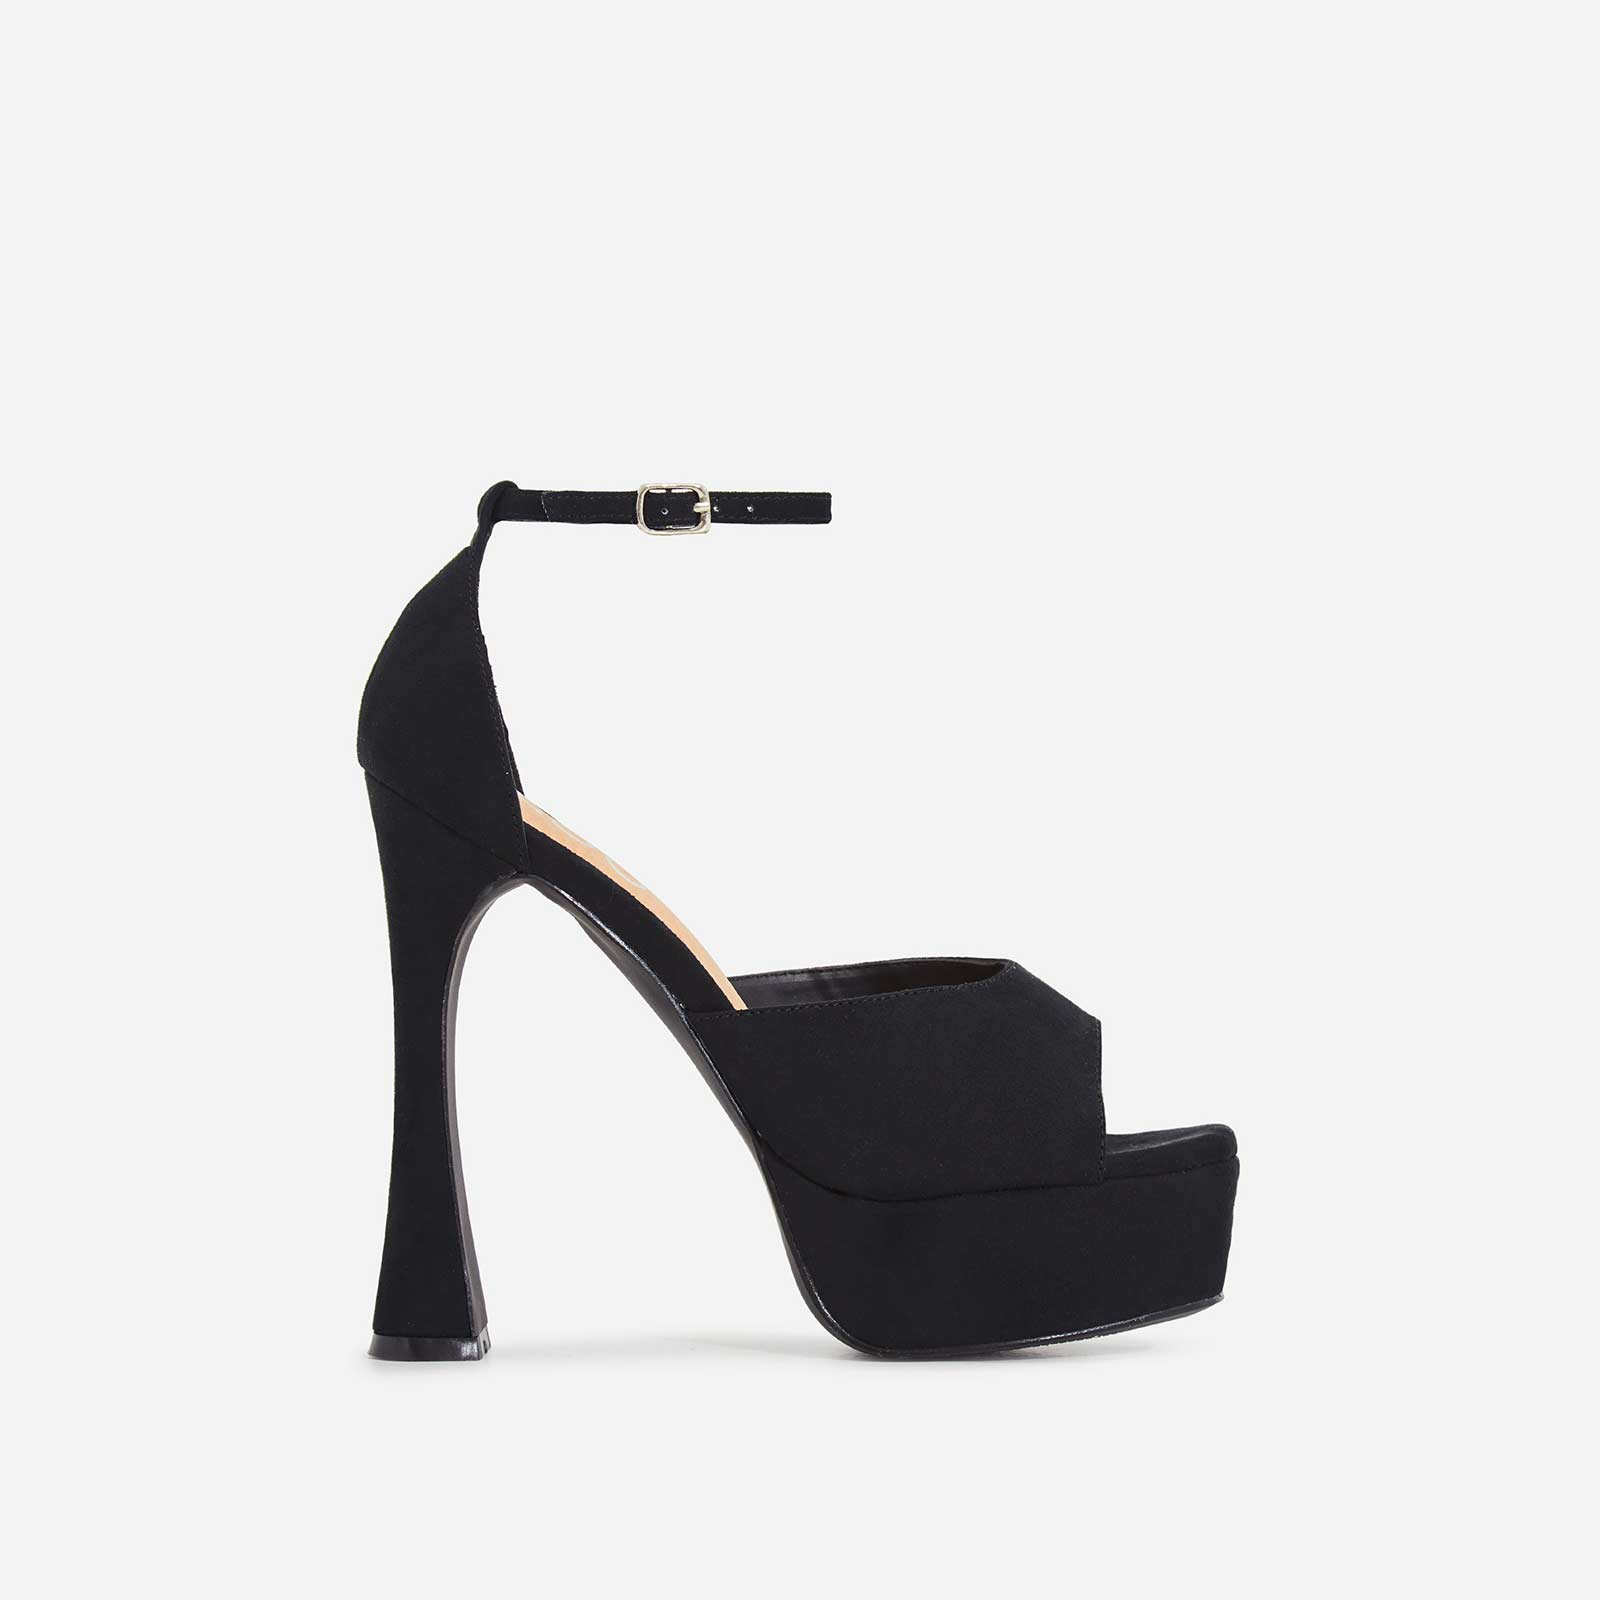 Kimmie Square Toe Platform Curved Heel In Black Faux Suede